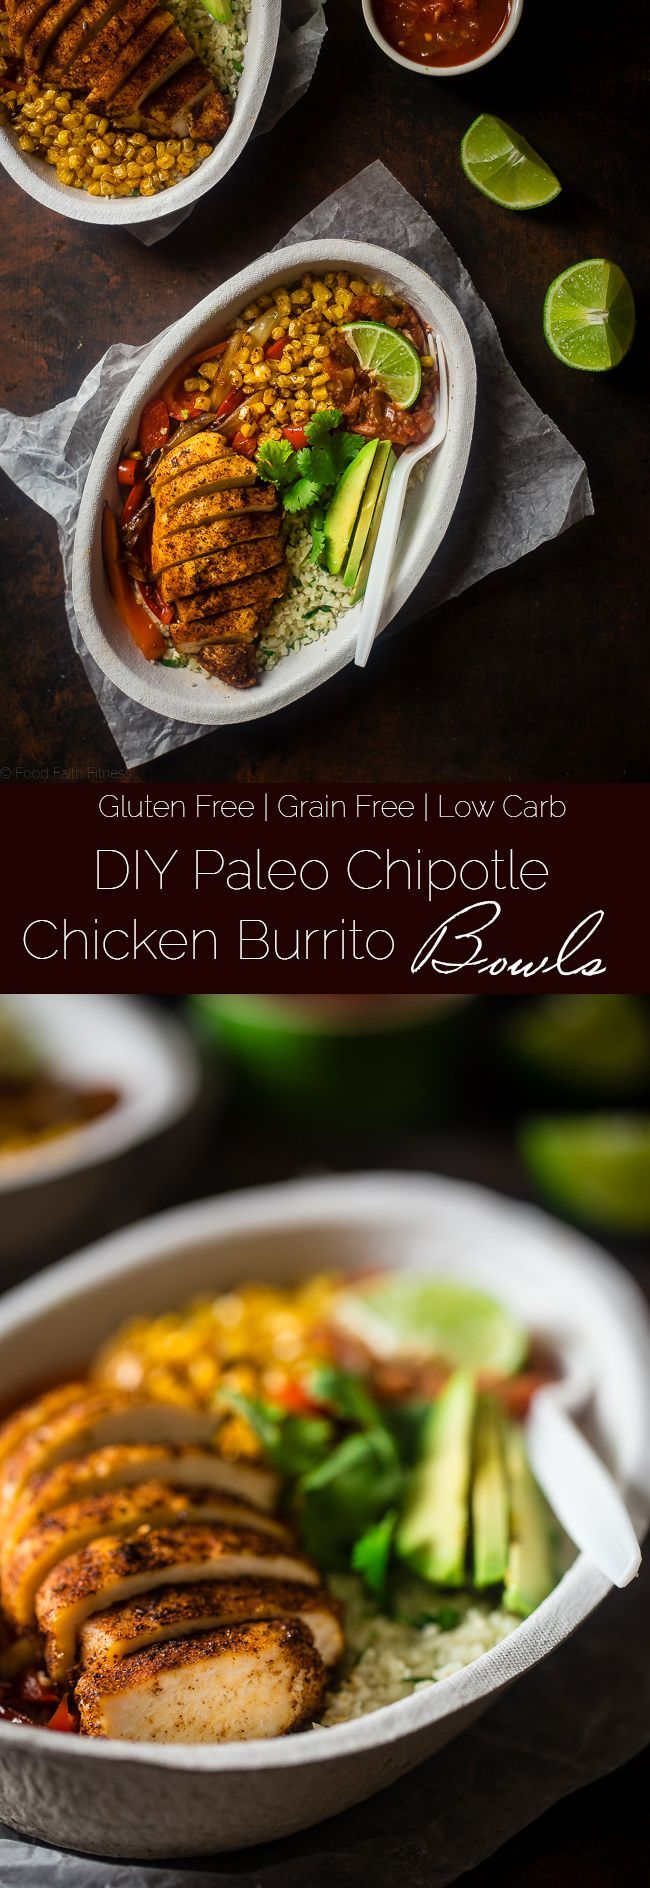 how to make your own chipotle sauce